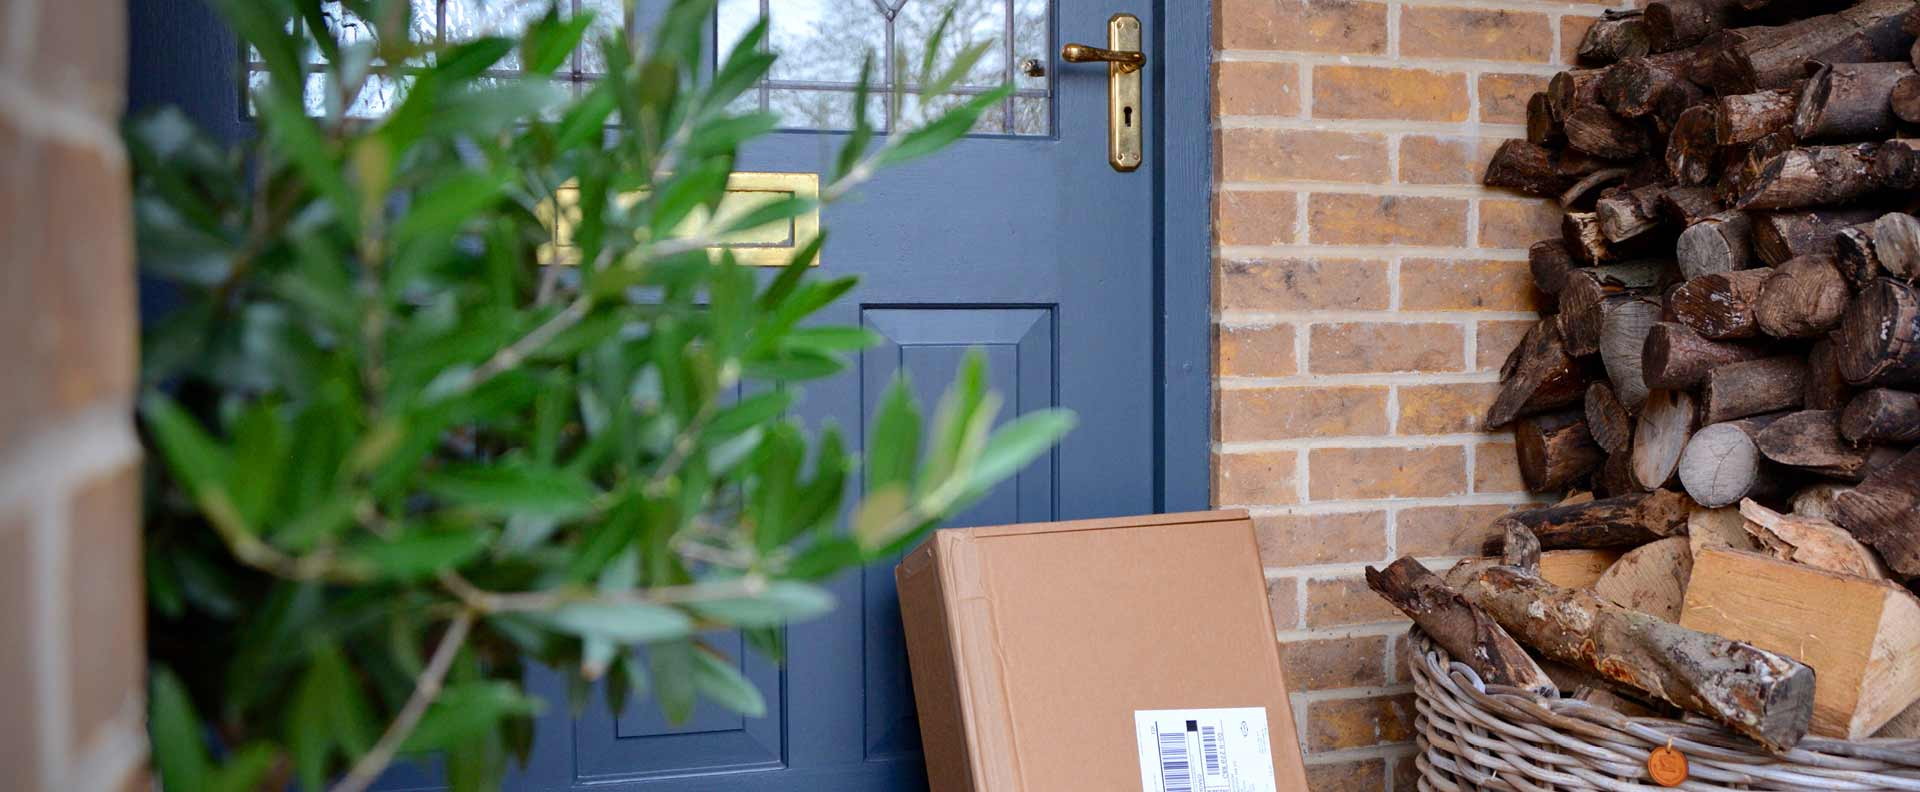 Package propped up against the front door of a house next to a pile of wood